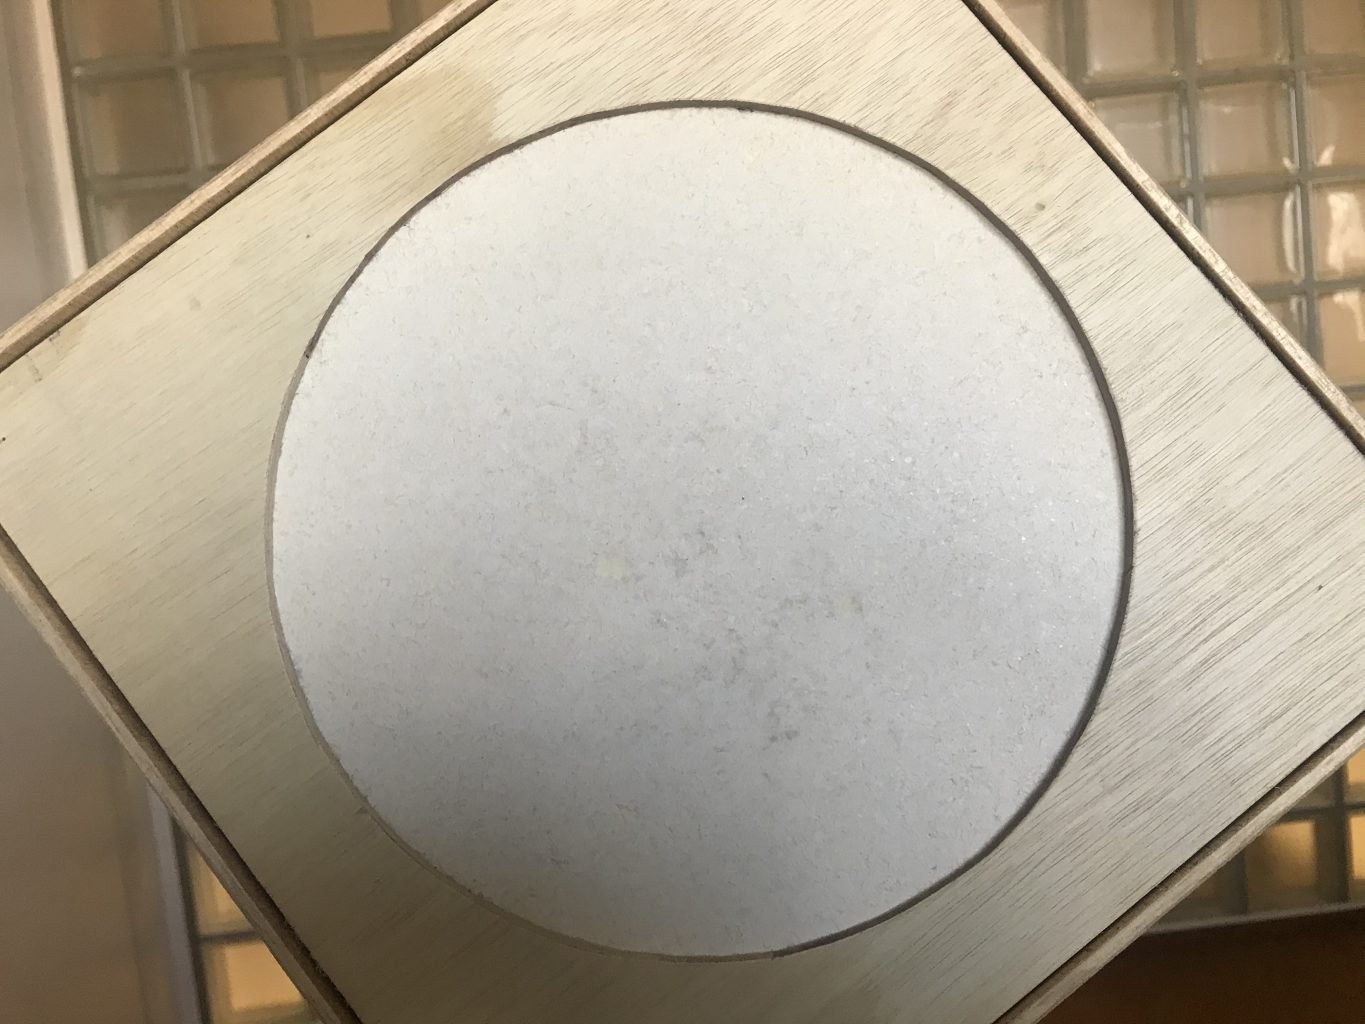 Square wooden frame with a circular opening, revealing white paper made with fish scales